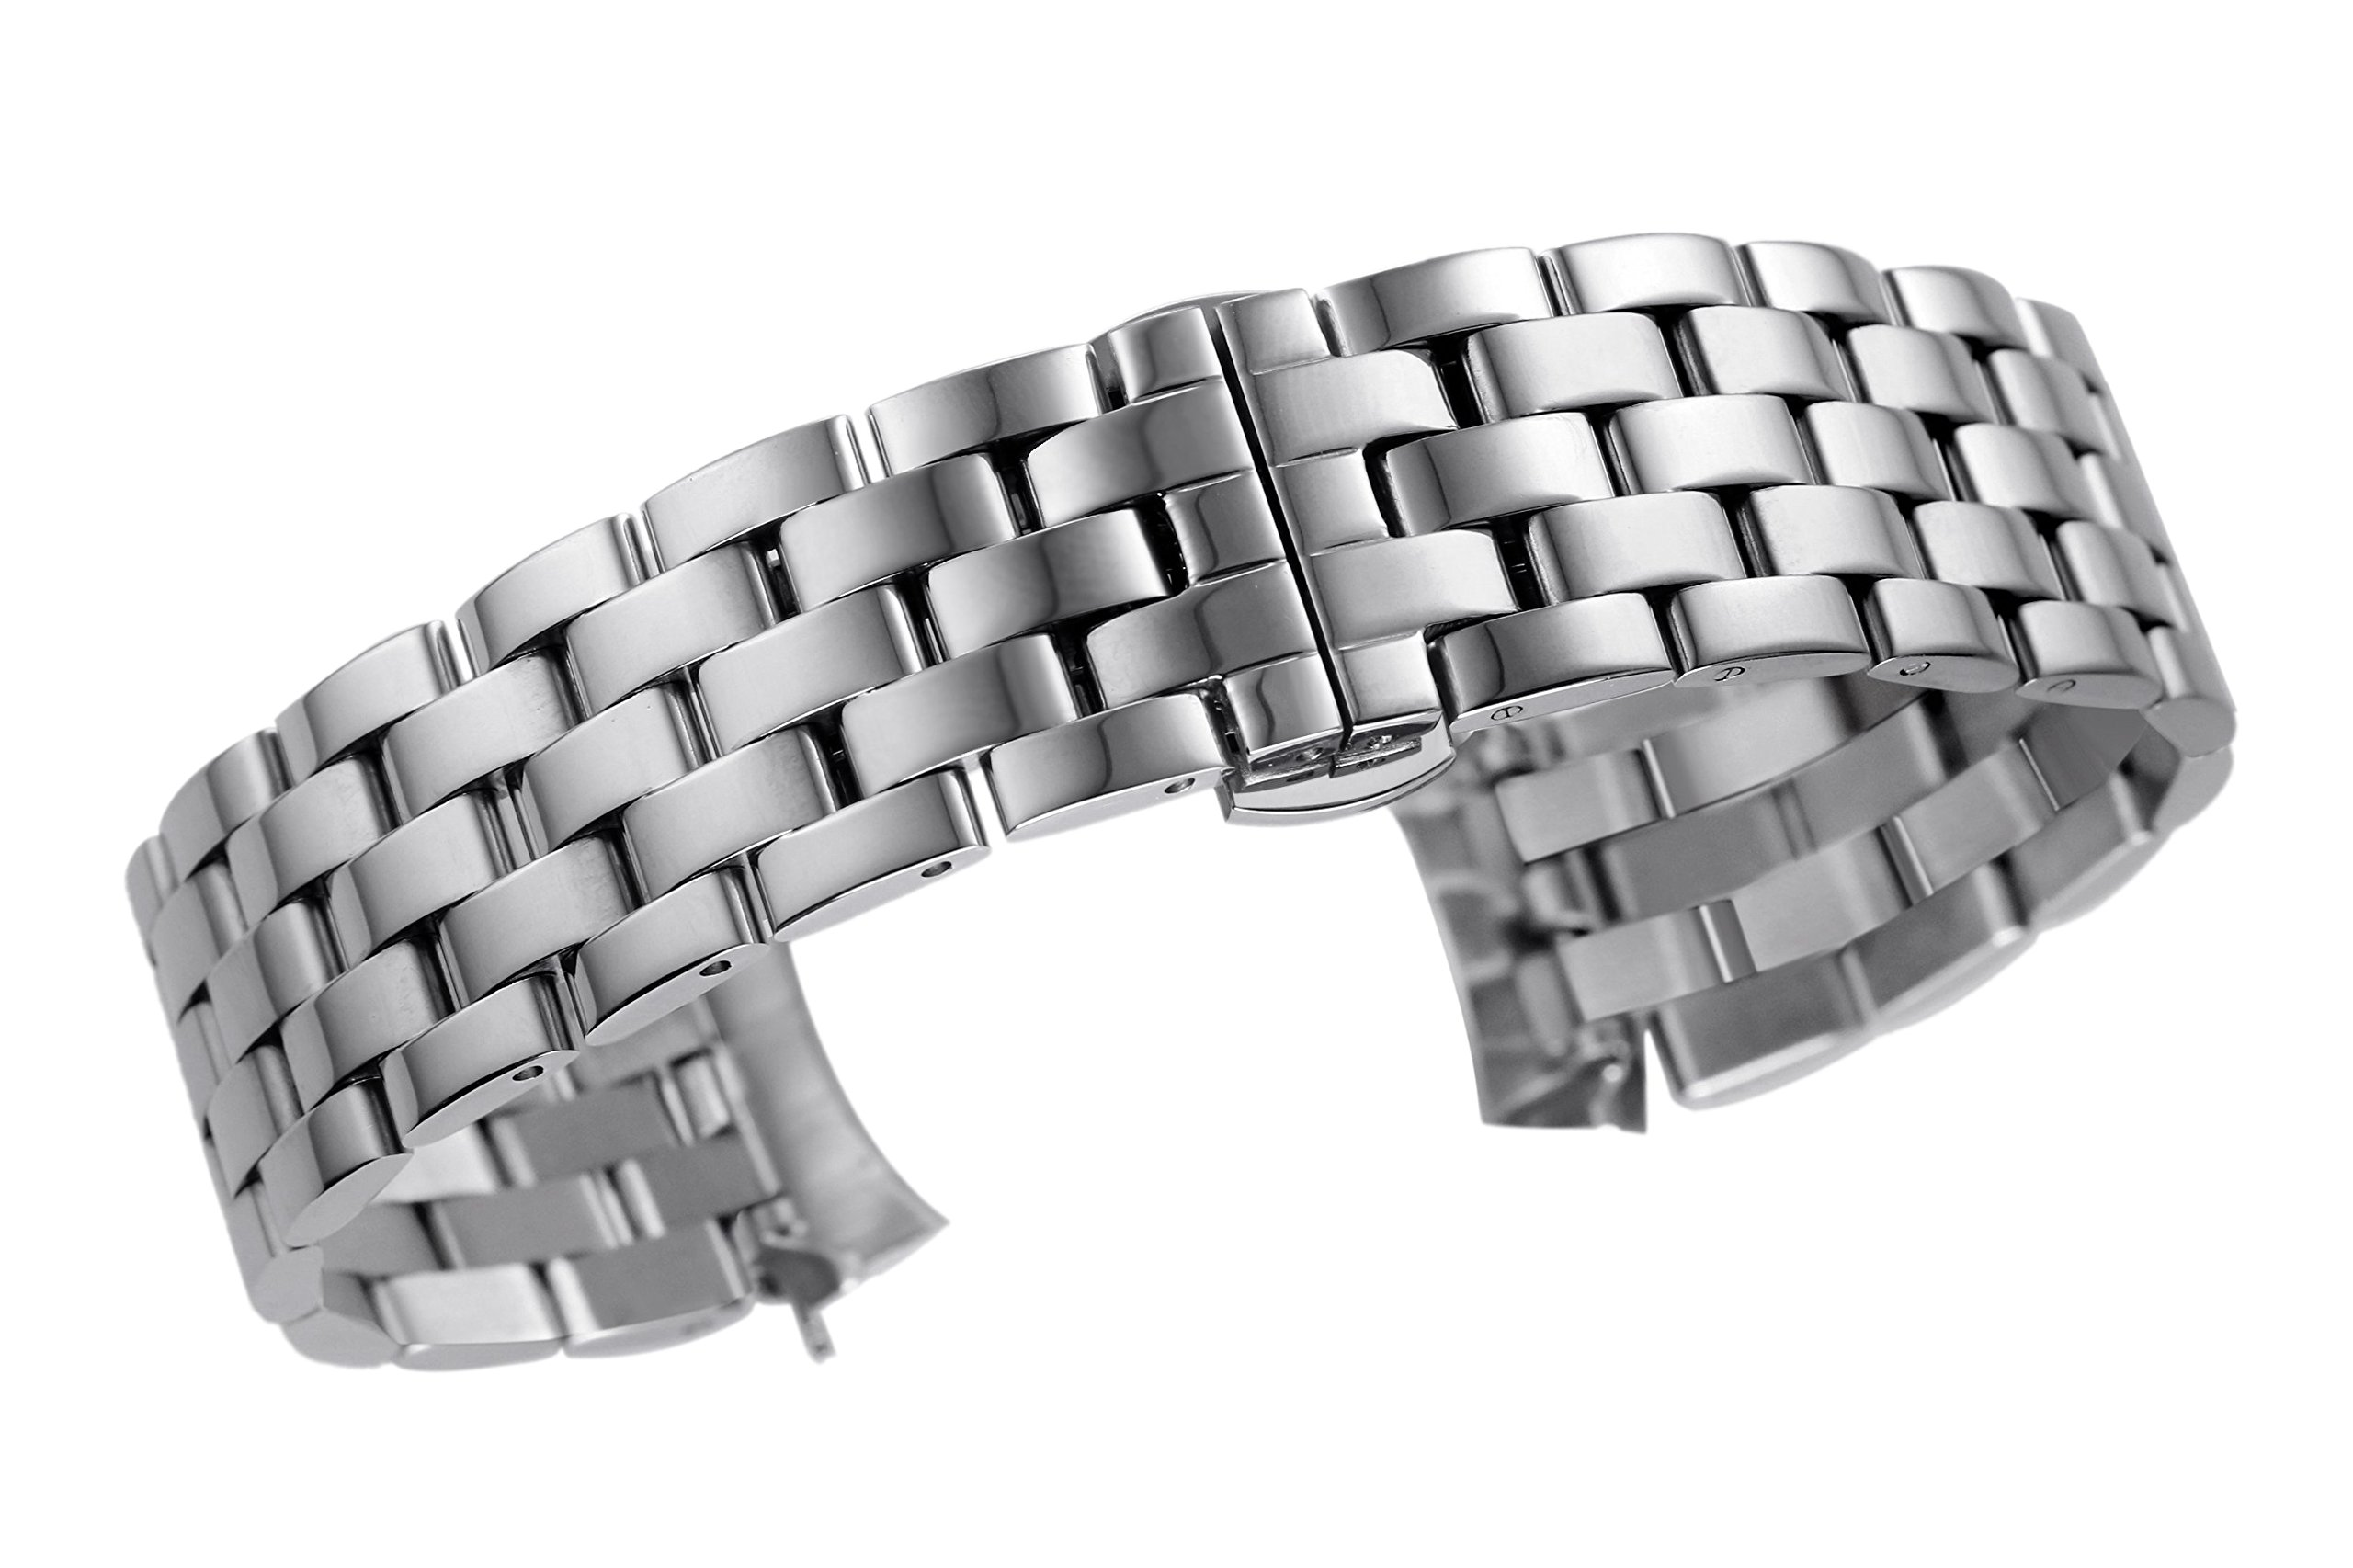 16mm Amazing Luxury Inox Steel SS Watch Bands for Women in Silver Solid Links Curved End Pilot Style